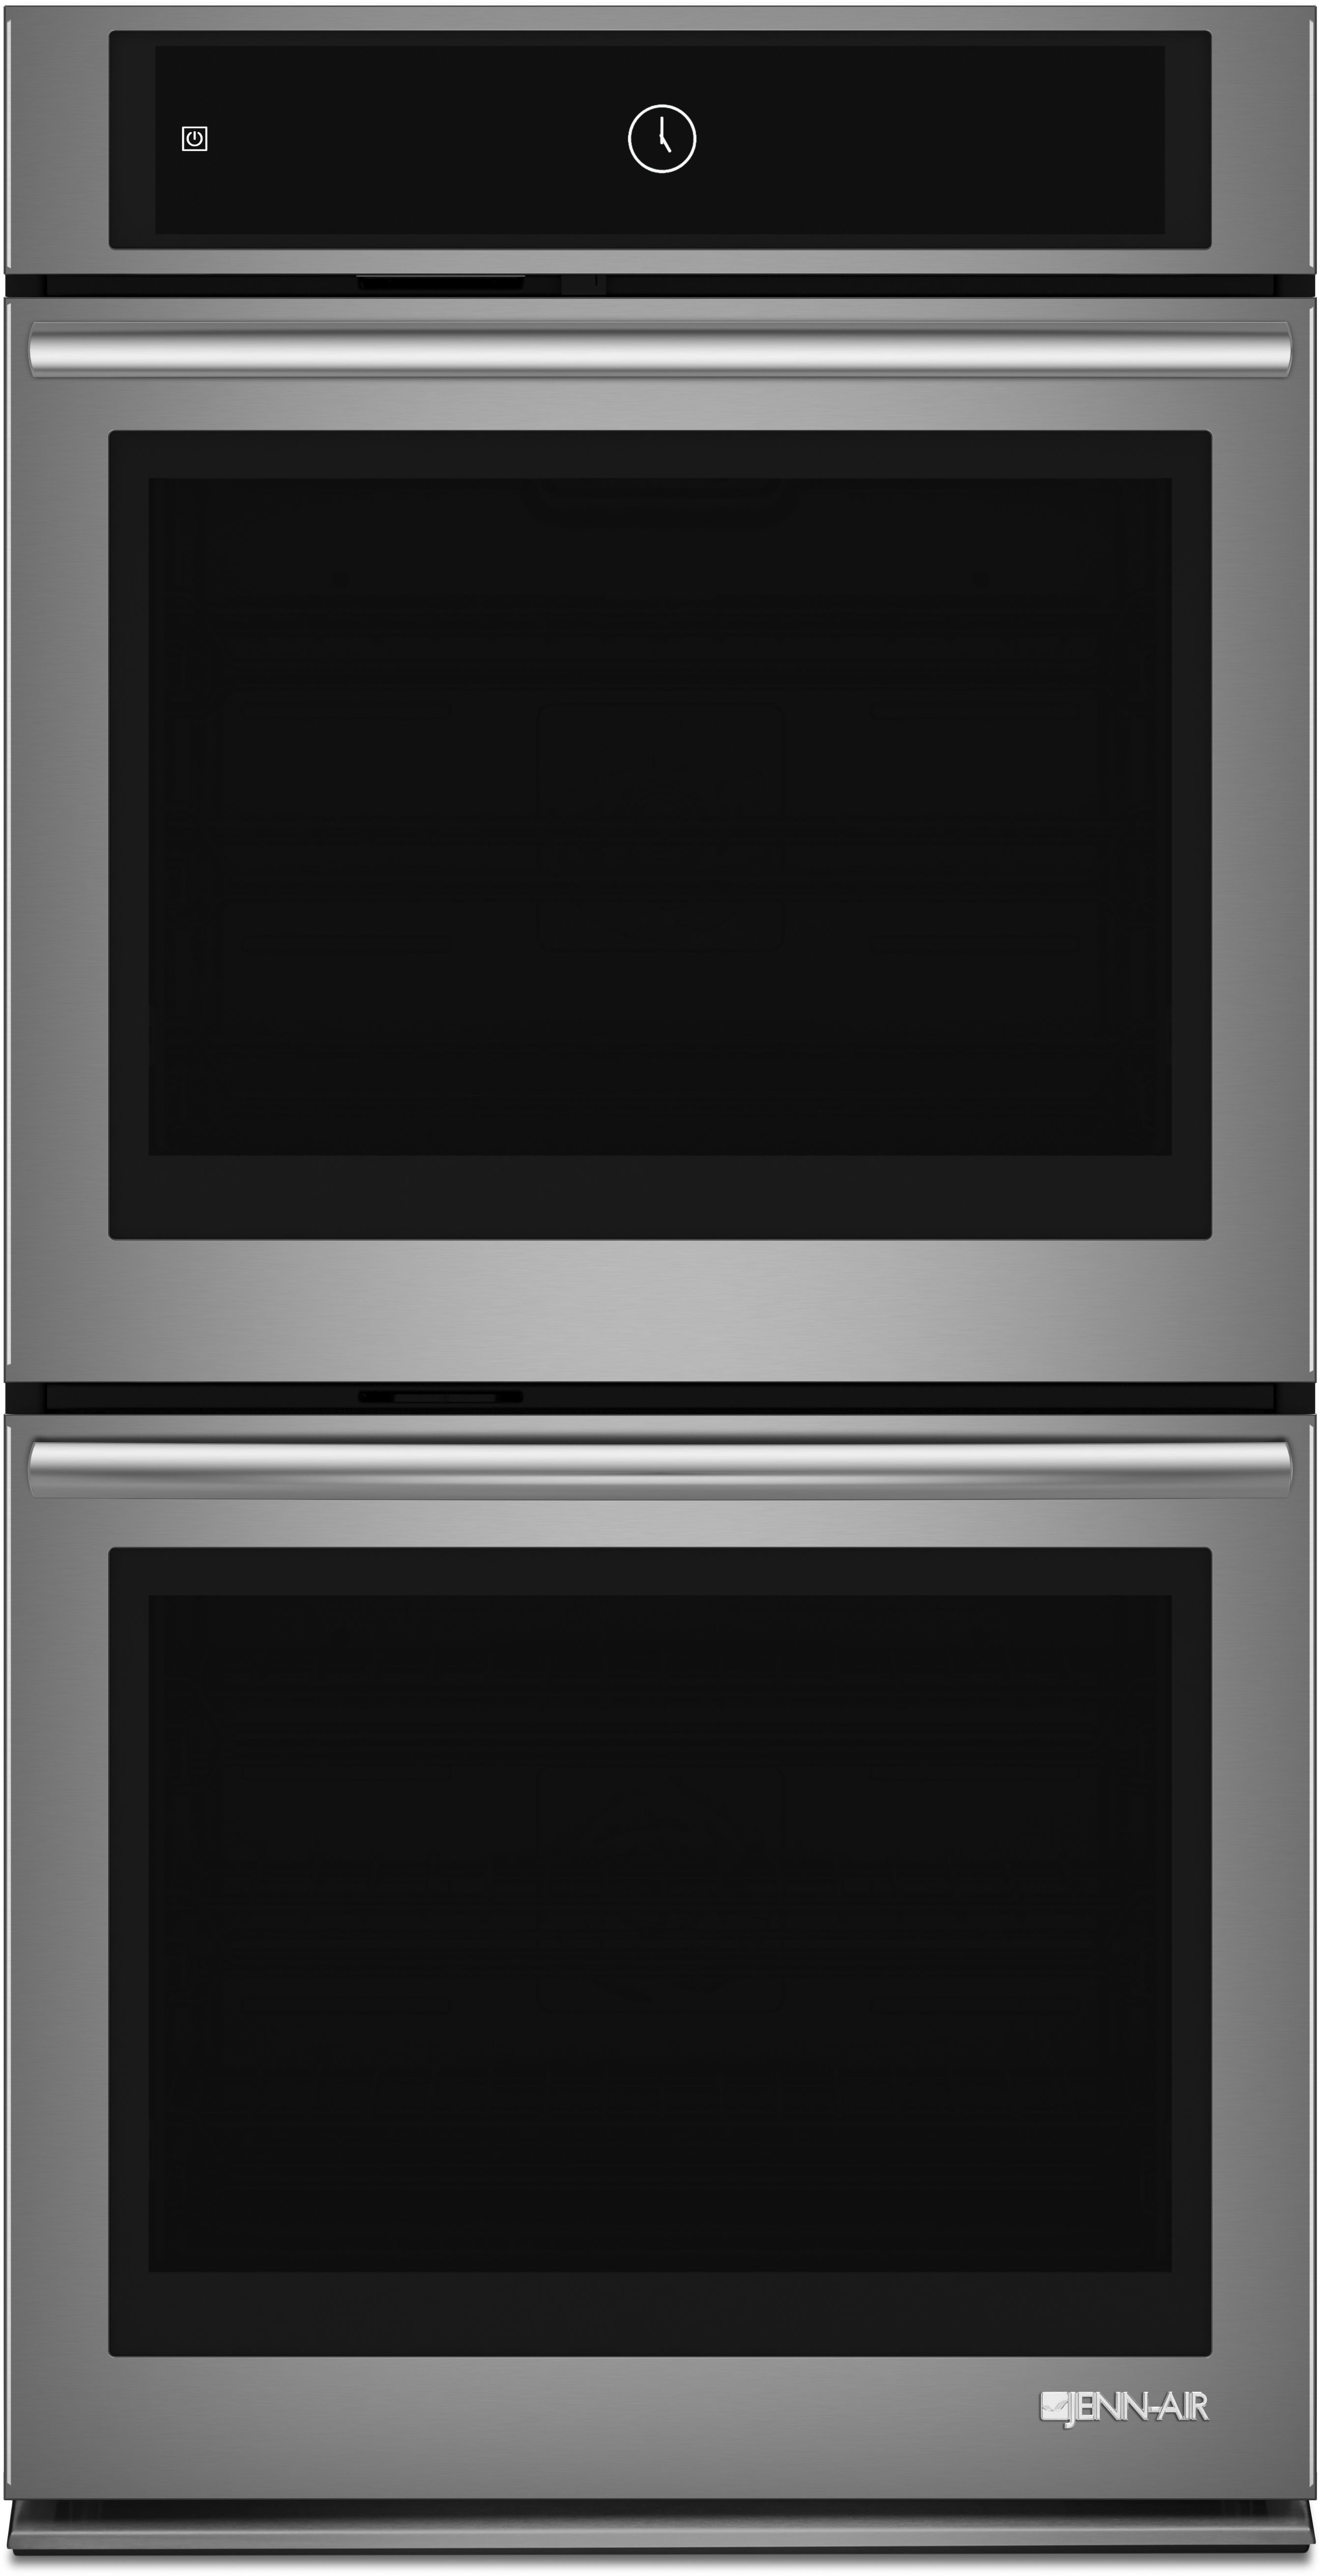 Electric Double Oven Built In | Home Appliances, Kitchen Appliances ...